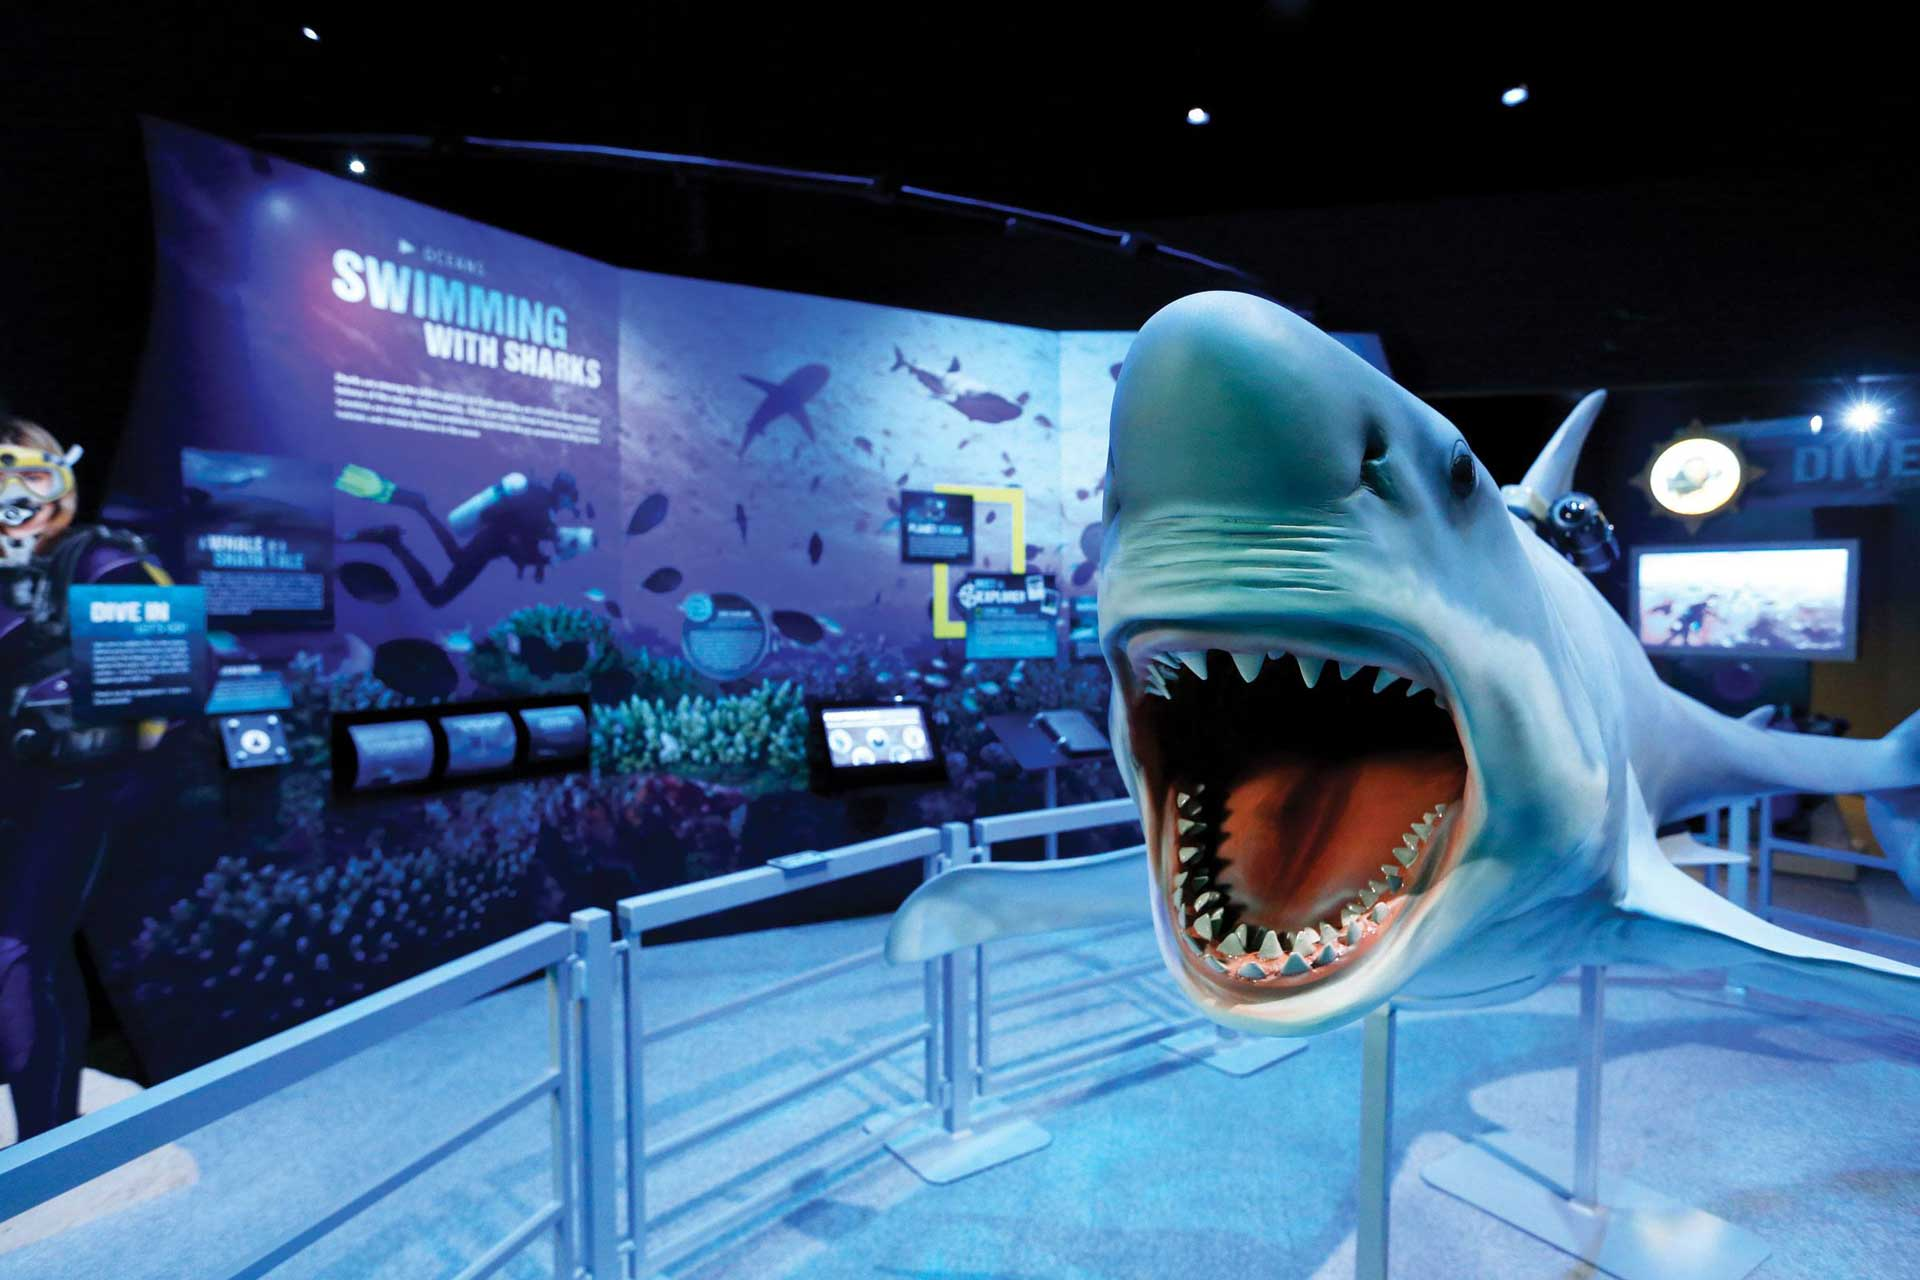 National Geographic shark touring exhibition Earth explorers